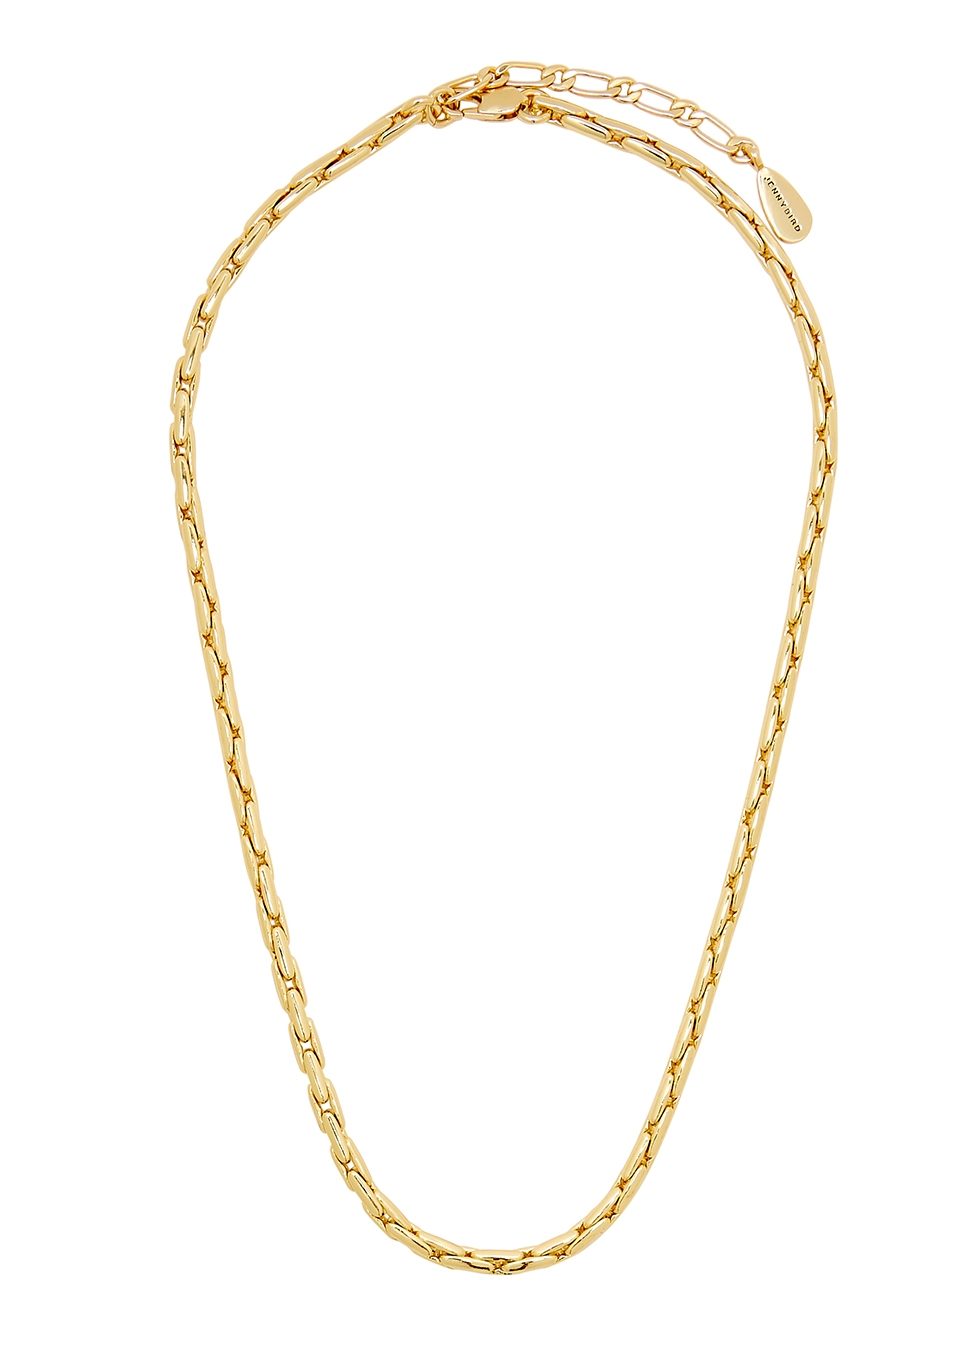 Constance 14kt gold-dipped chain necklace